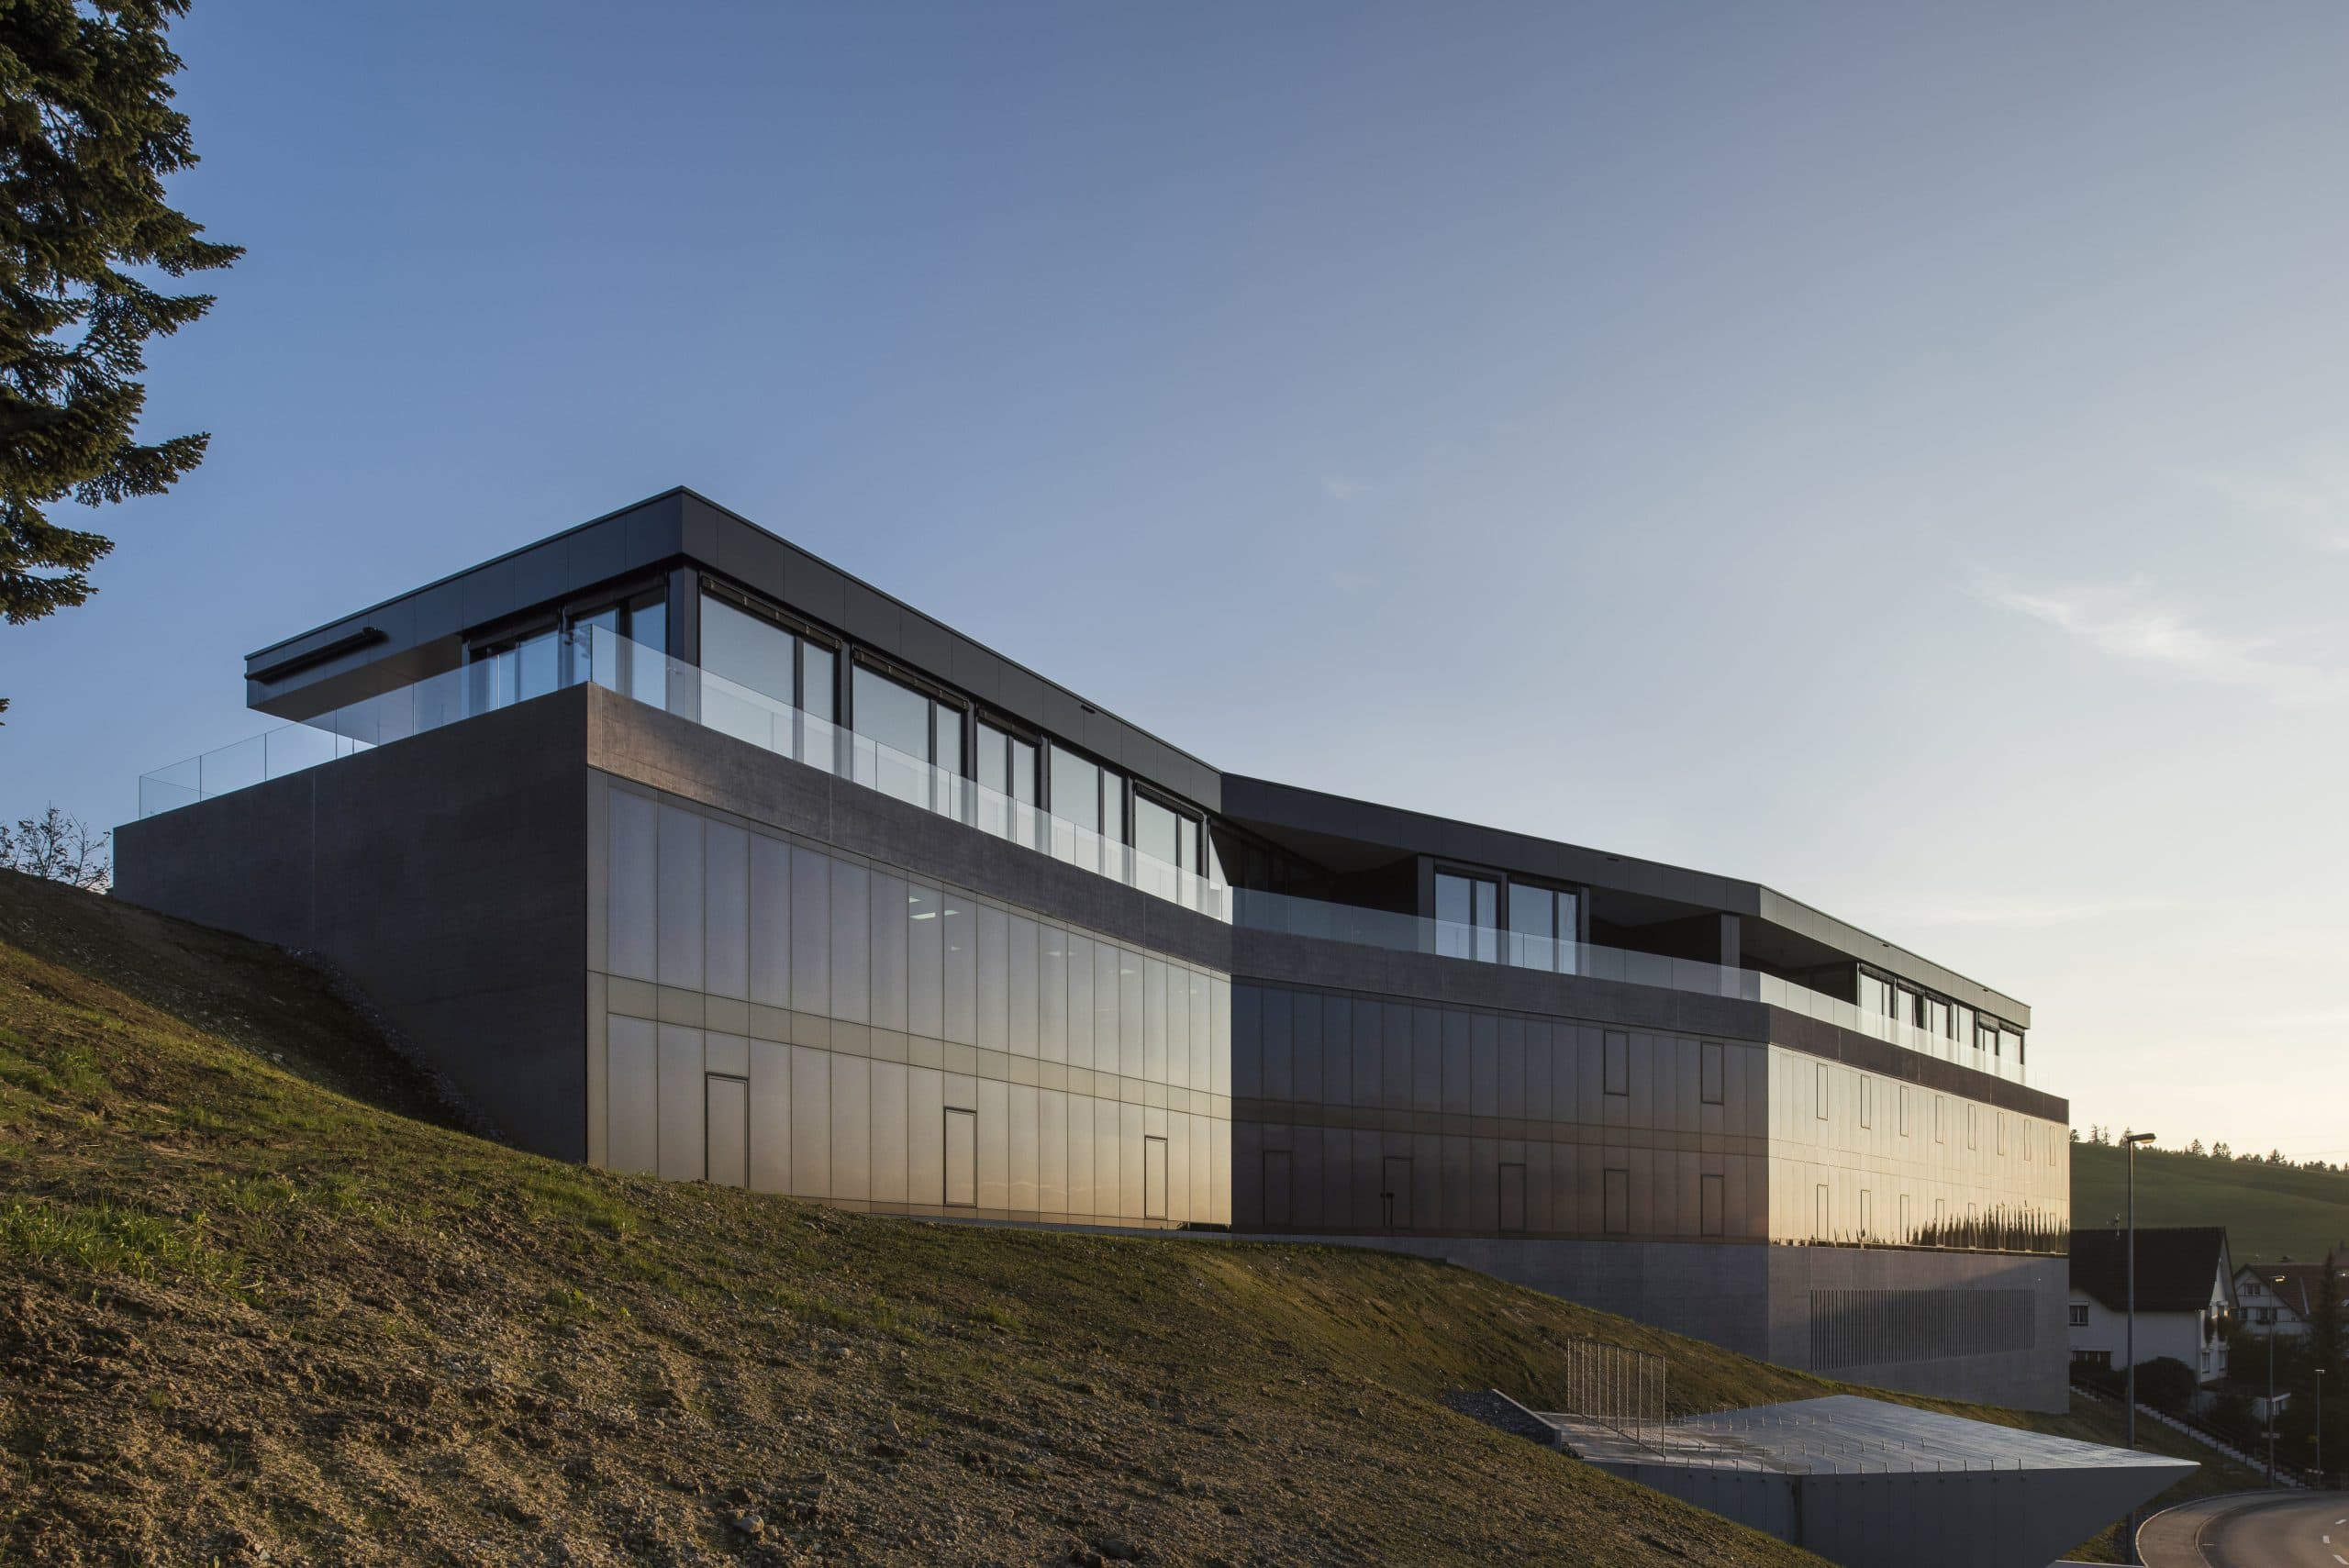 Bellavista private eyecare clinic in switzerland withelectrchromic glass